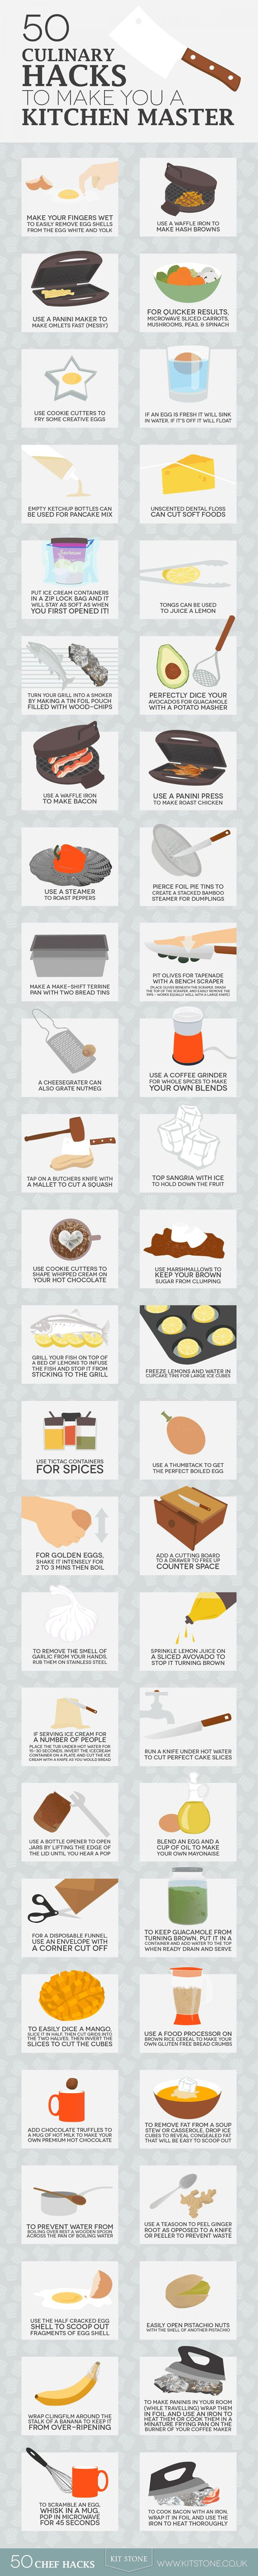 50 Kitchen Tricks to Help You Become a Master Chef